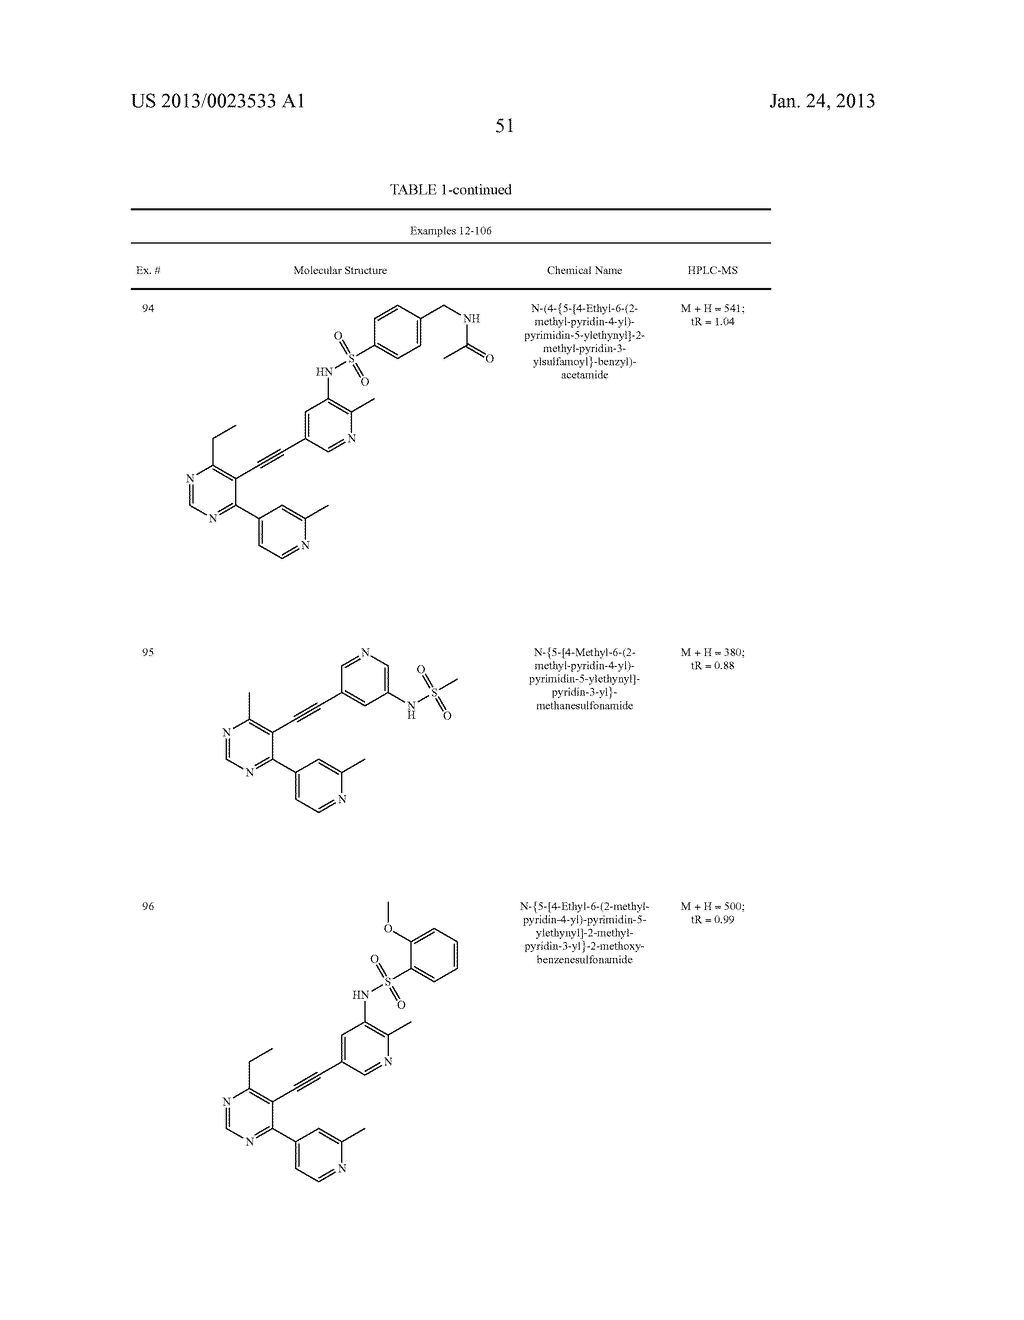 NEW 5-ALKYNYL-PYRIDINES - diagram, schematic, and image 52